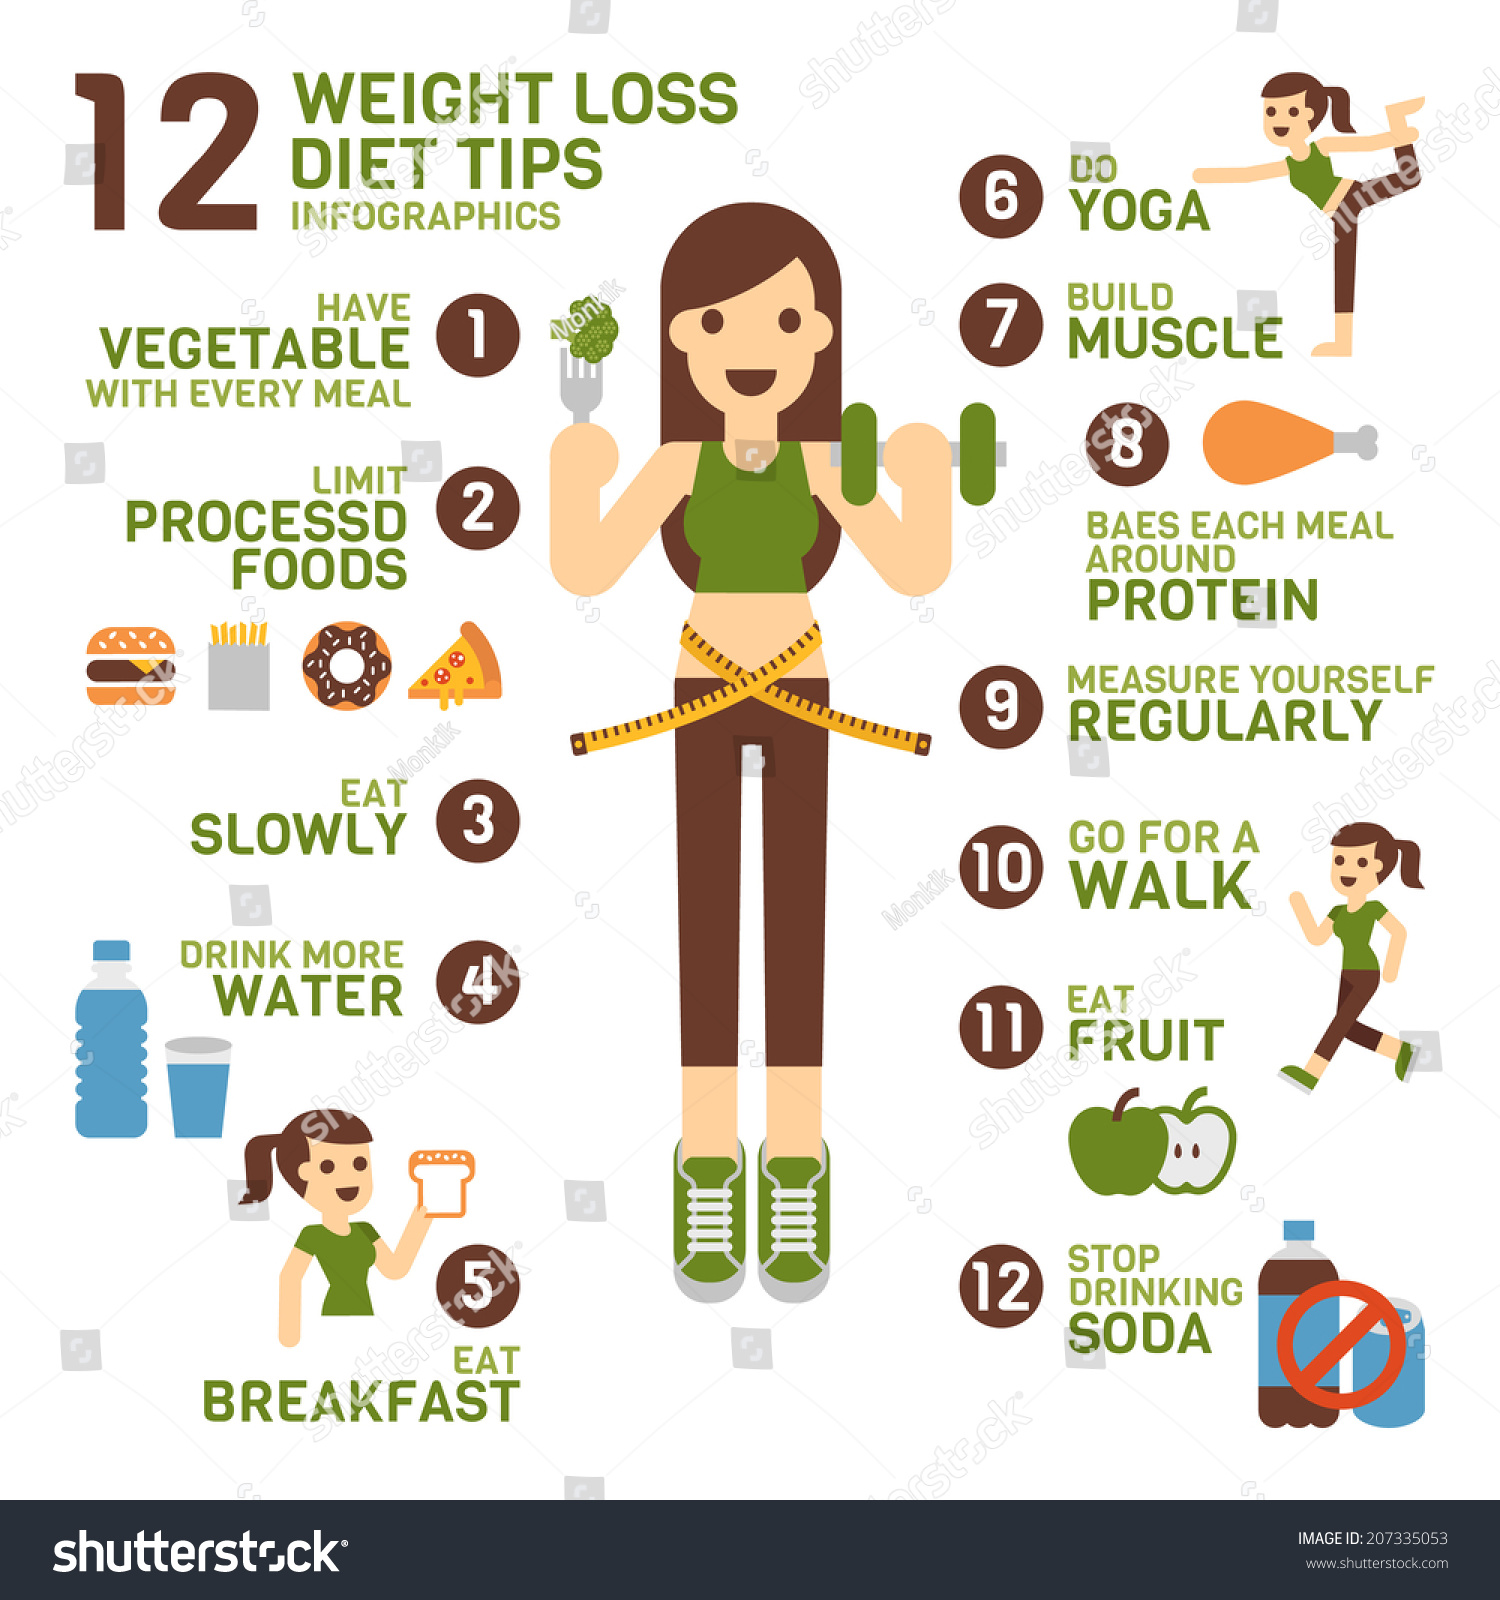 stock-vector--weight-loss-diet-tips-infographics-207335053.jpg